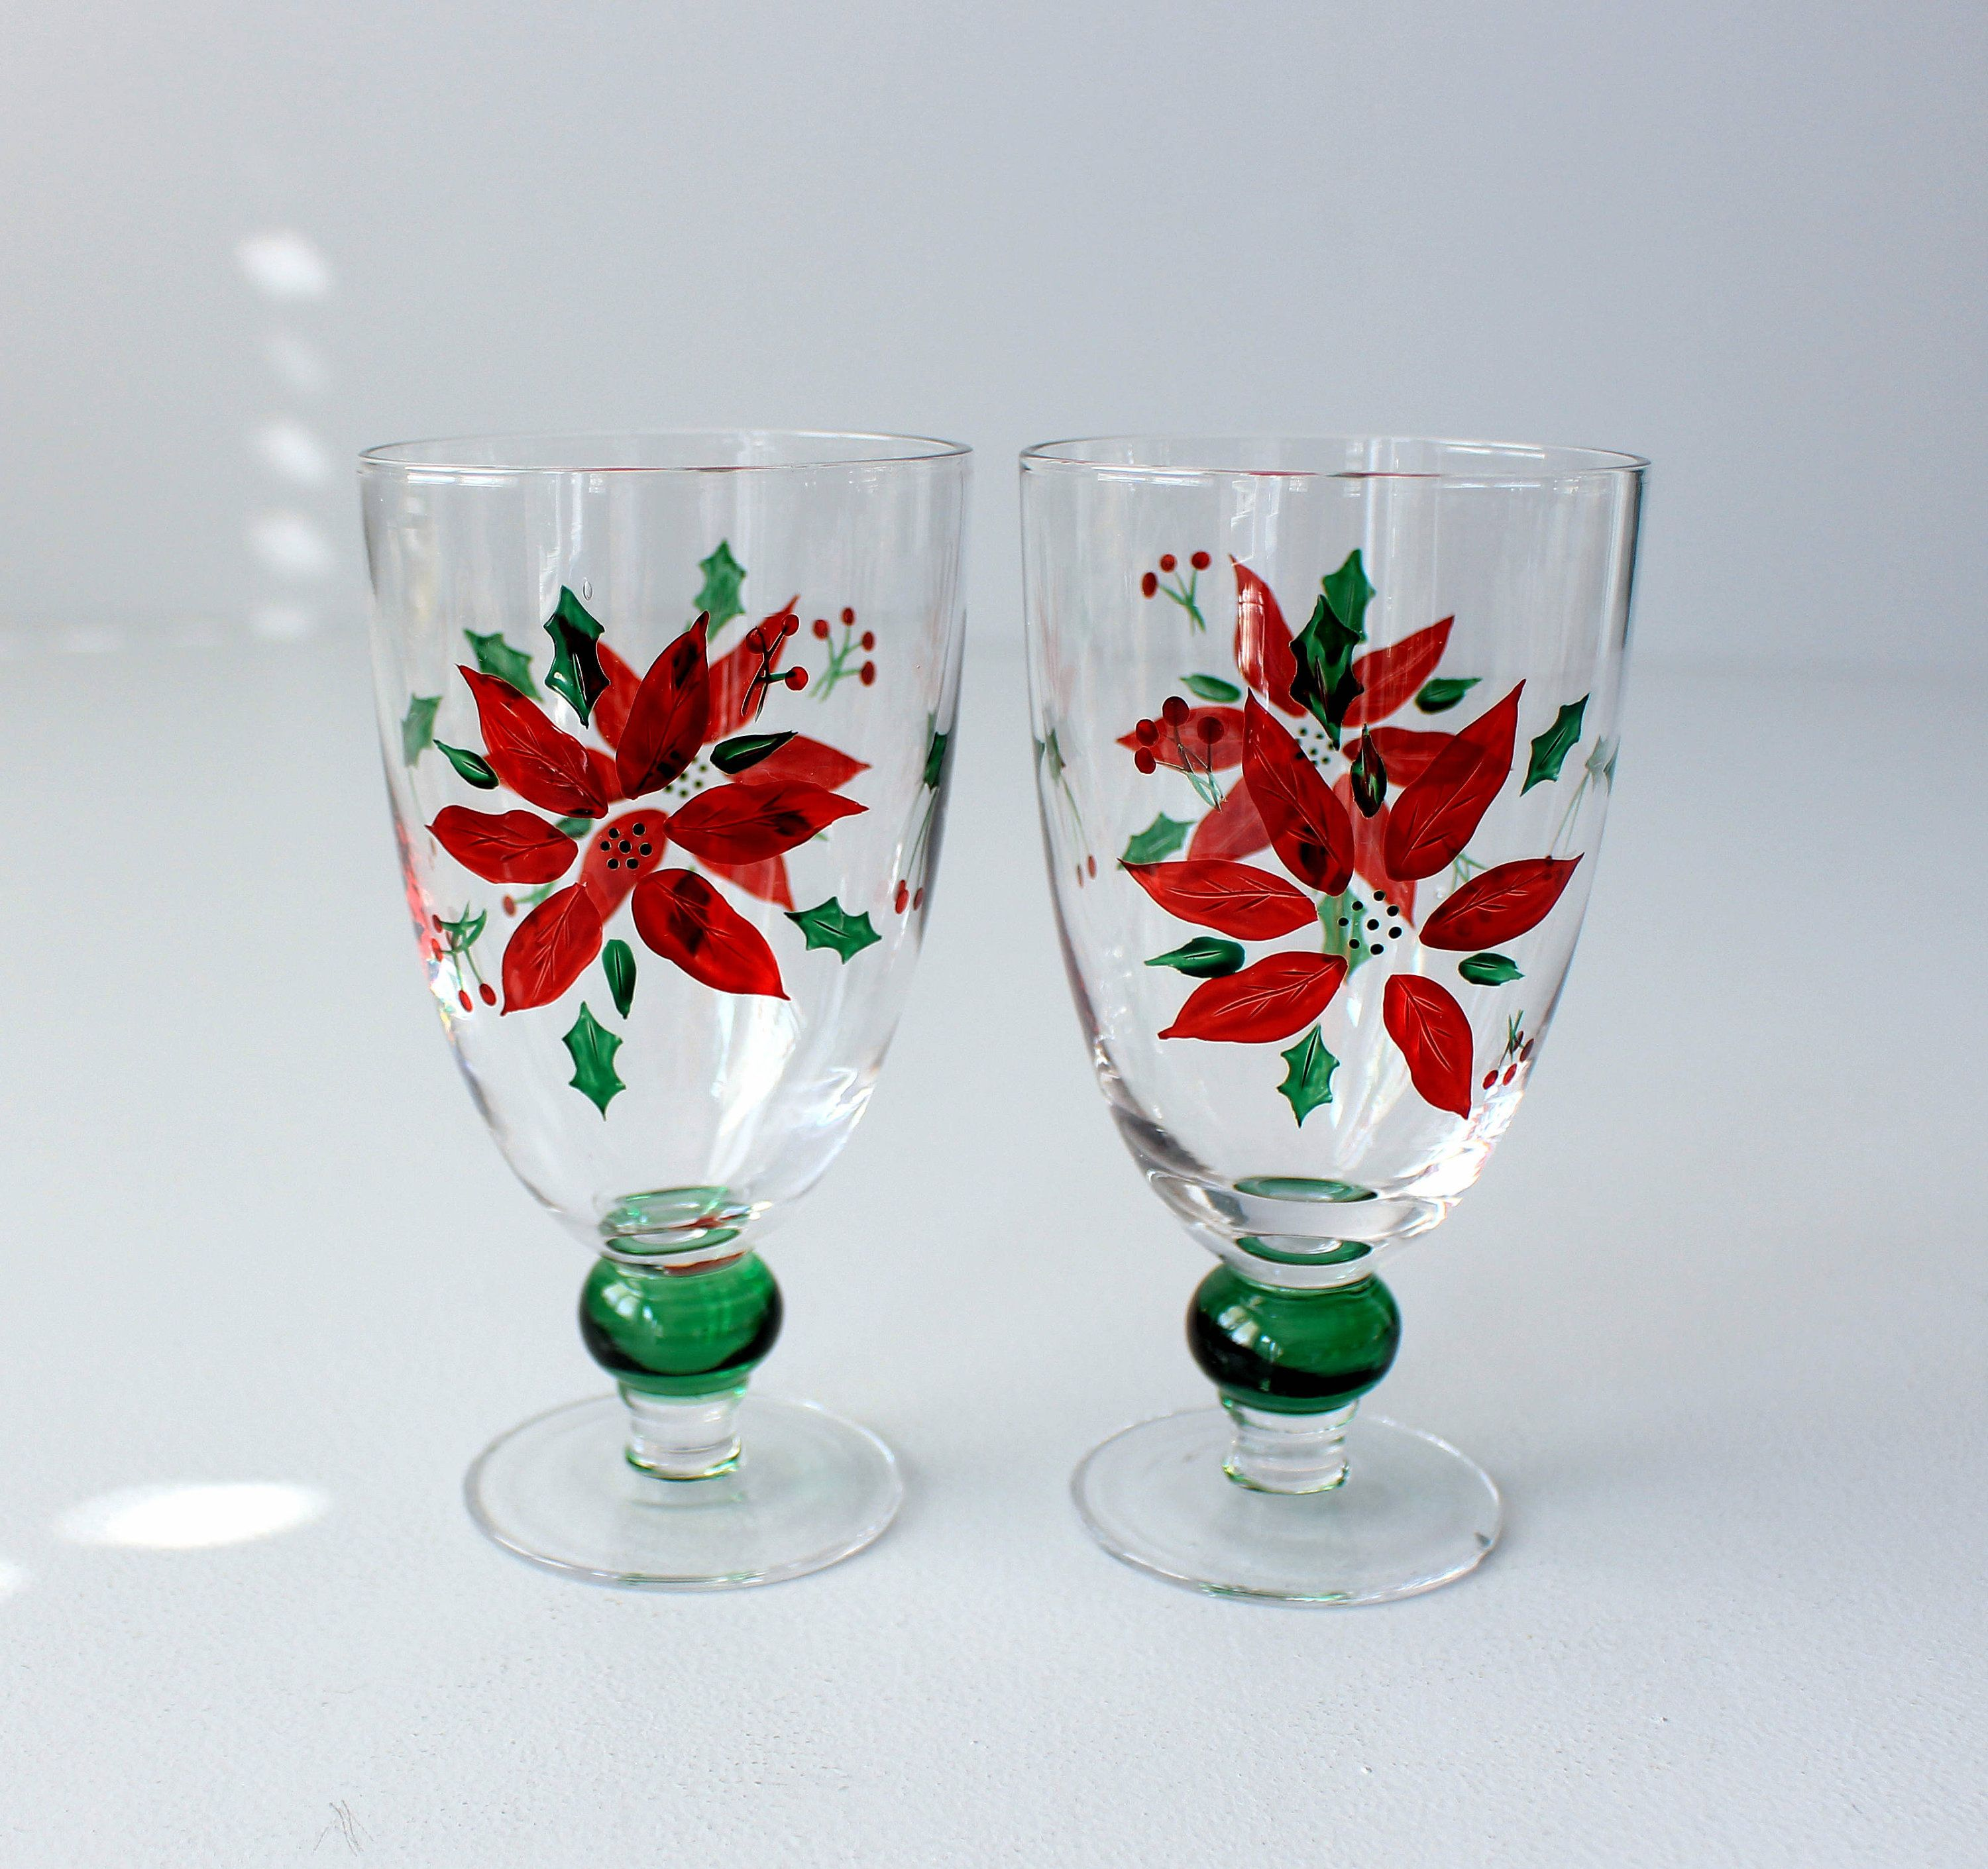 Crystal Wine Glasses Poinsettia Vintage Christmas Glasses Etsy Crystal Wine Glasses Christmas Glasses Wine Glasses